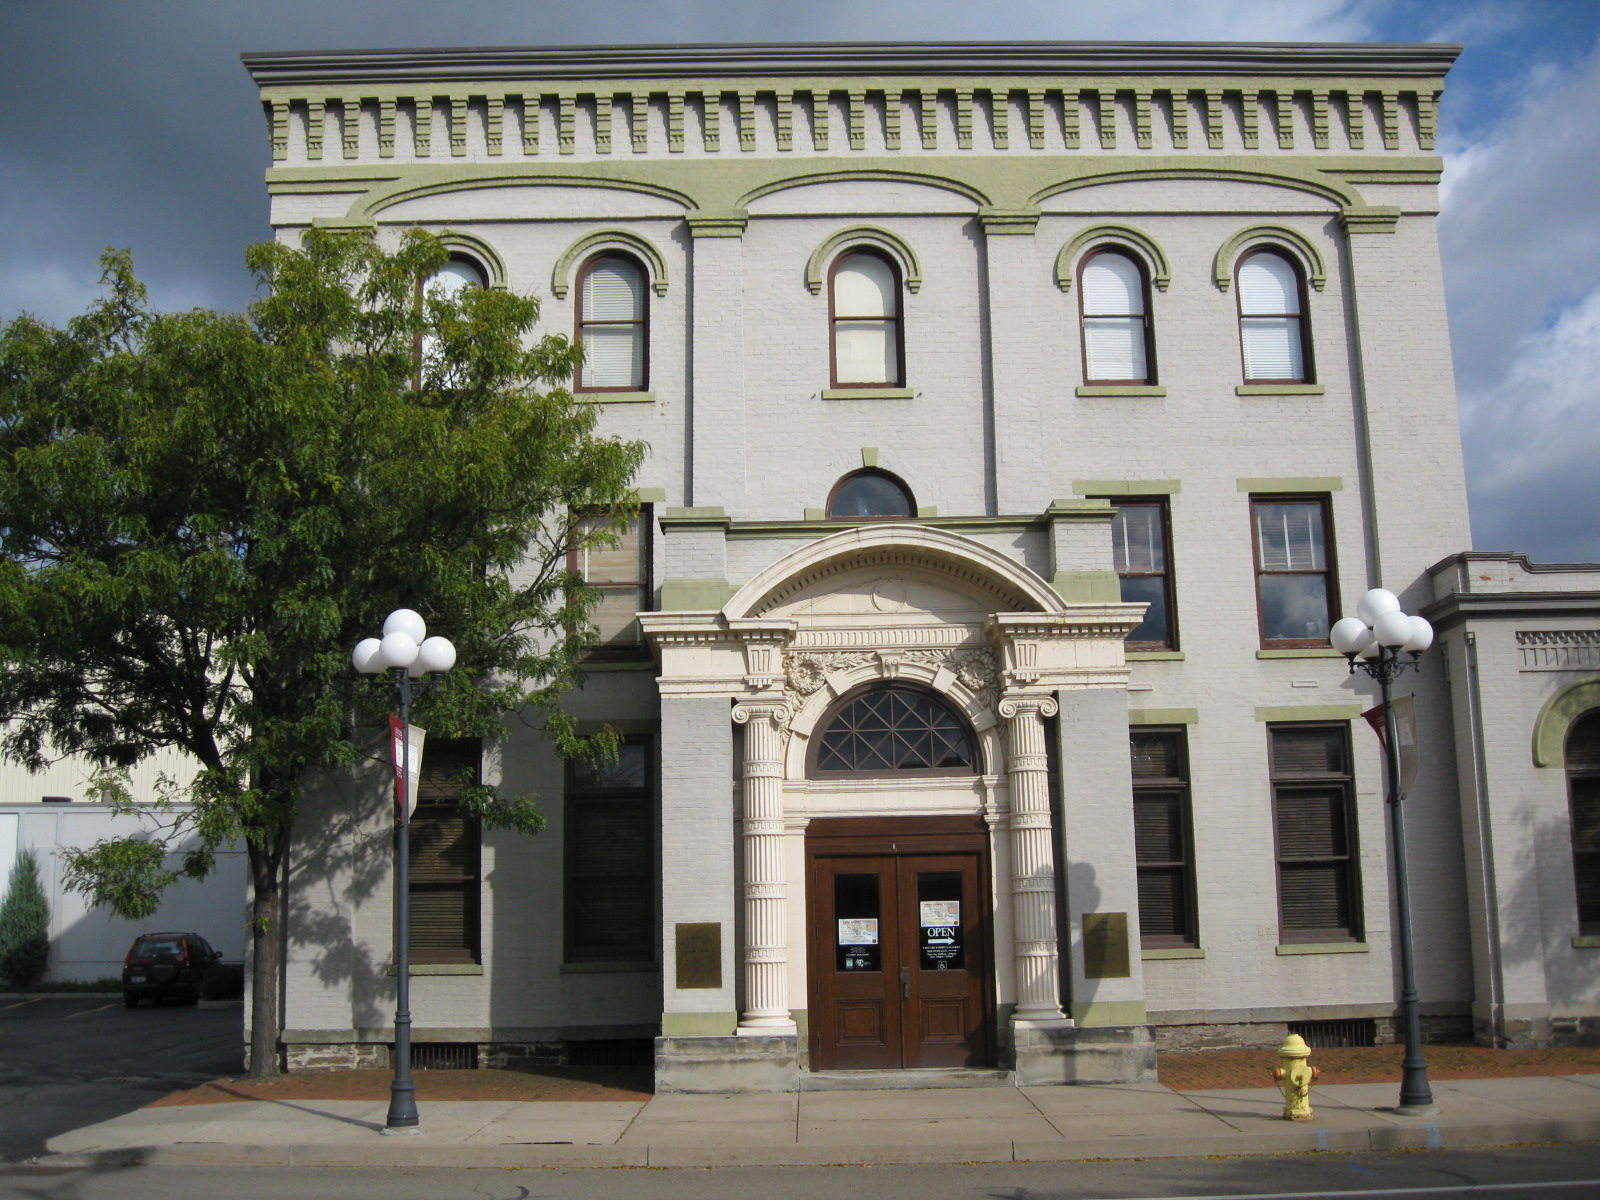 The Chemung Valley History Museum